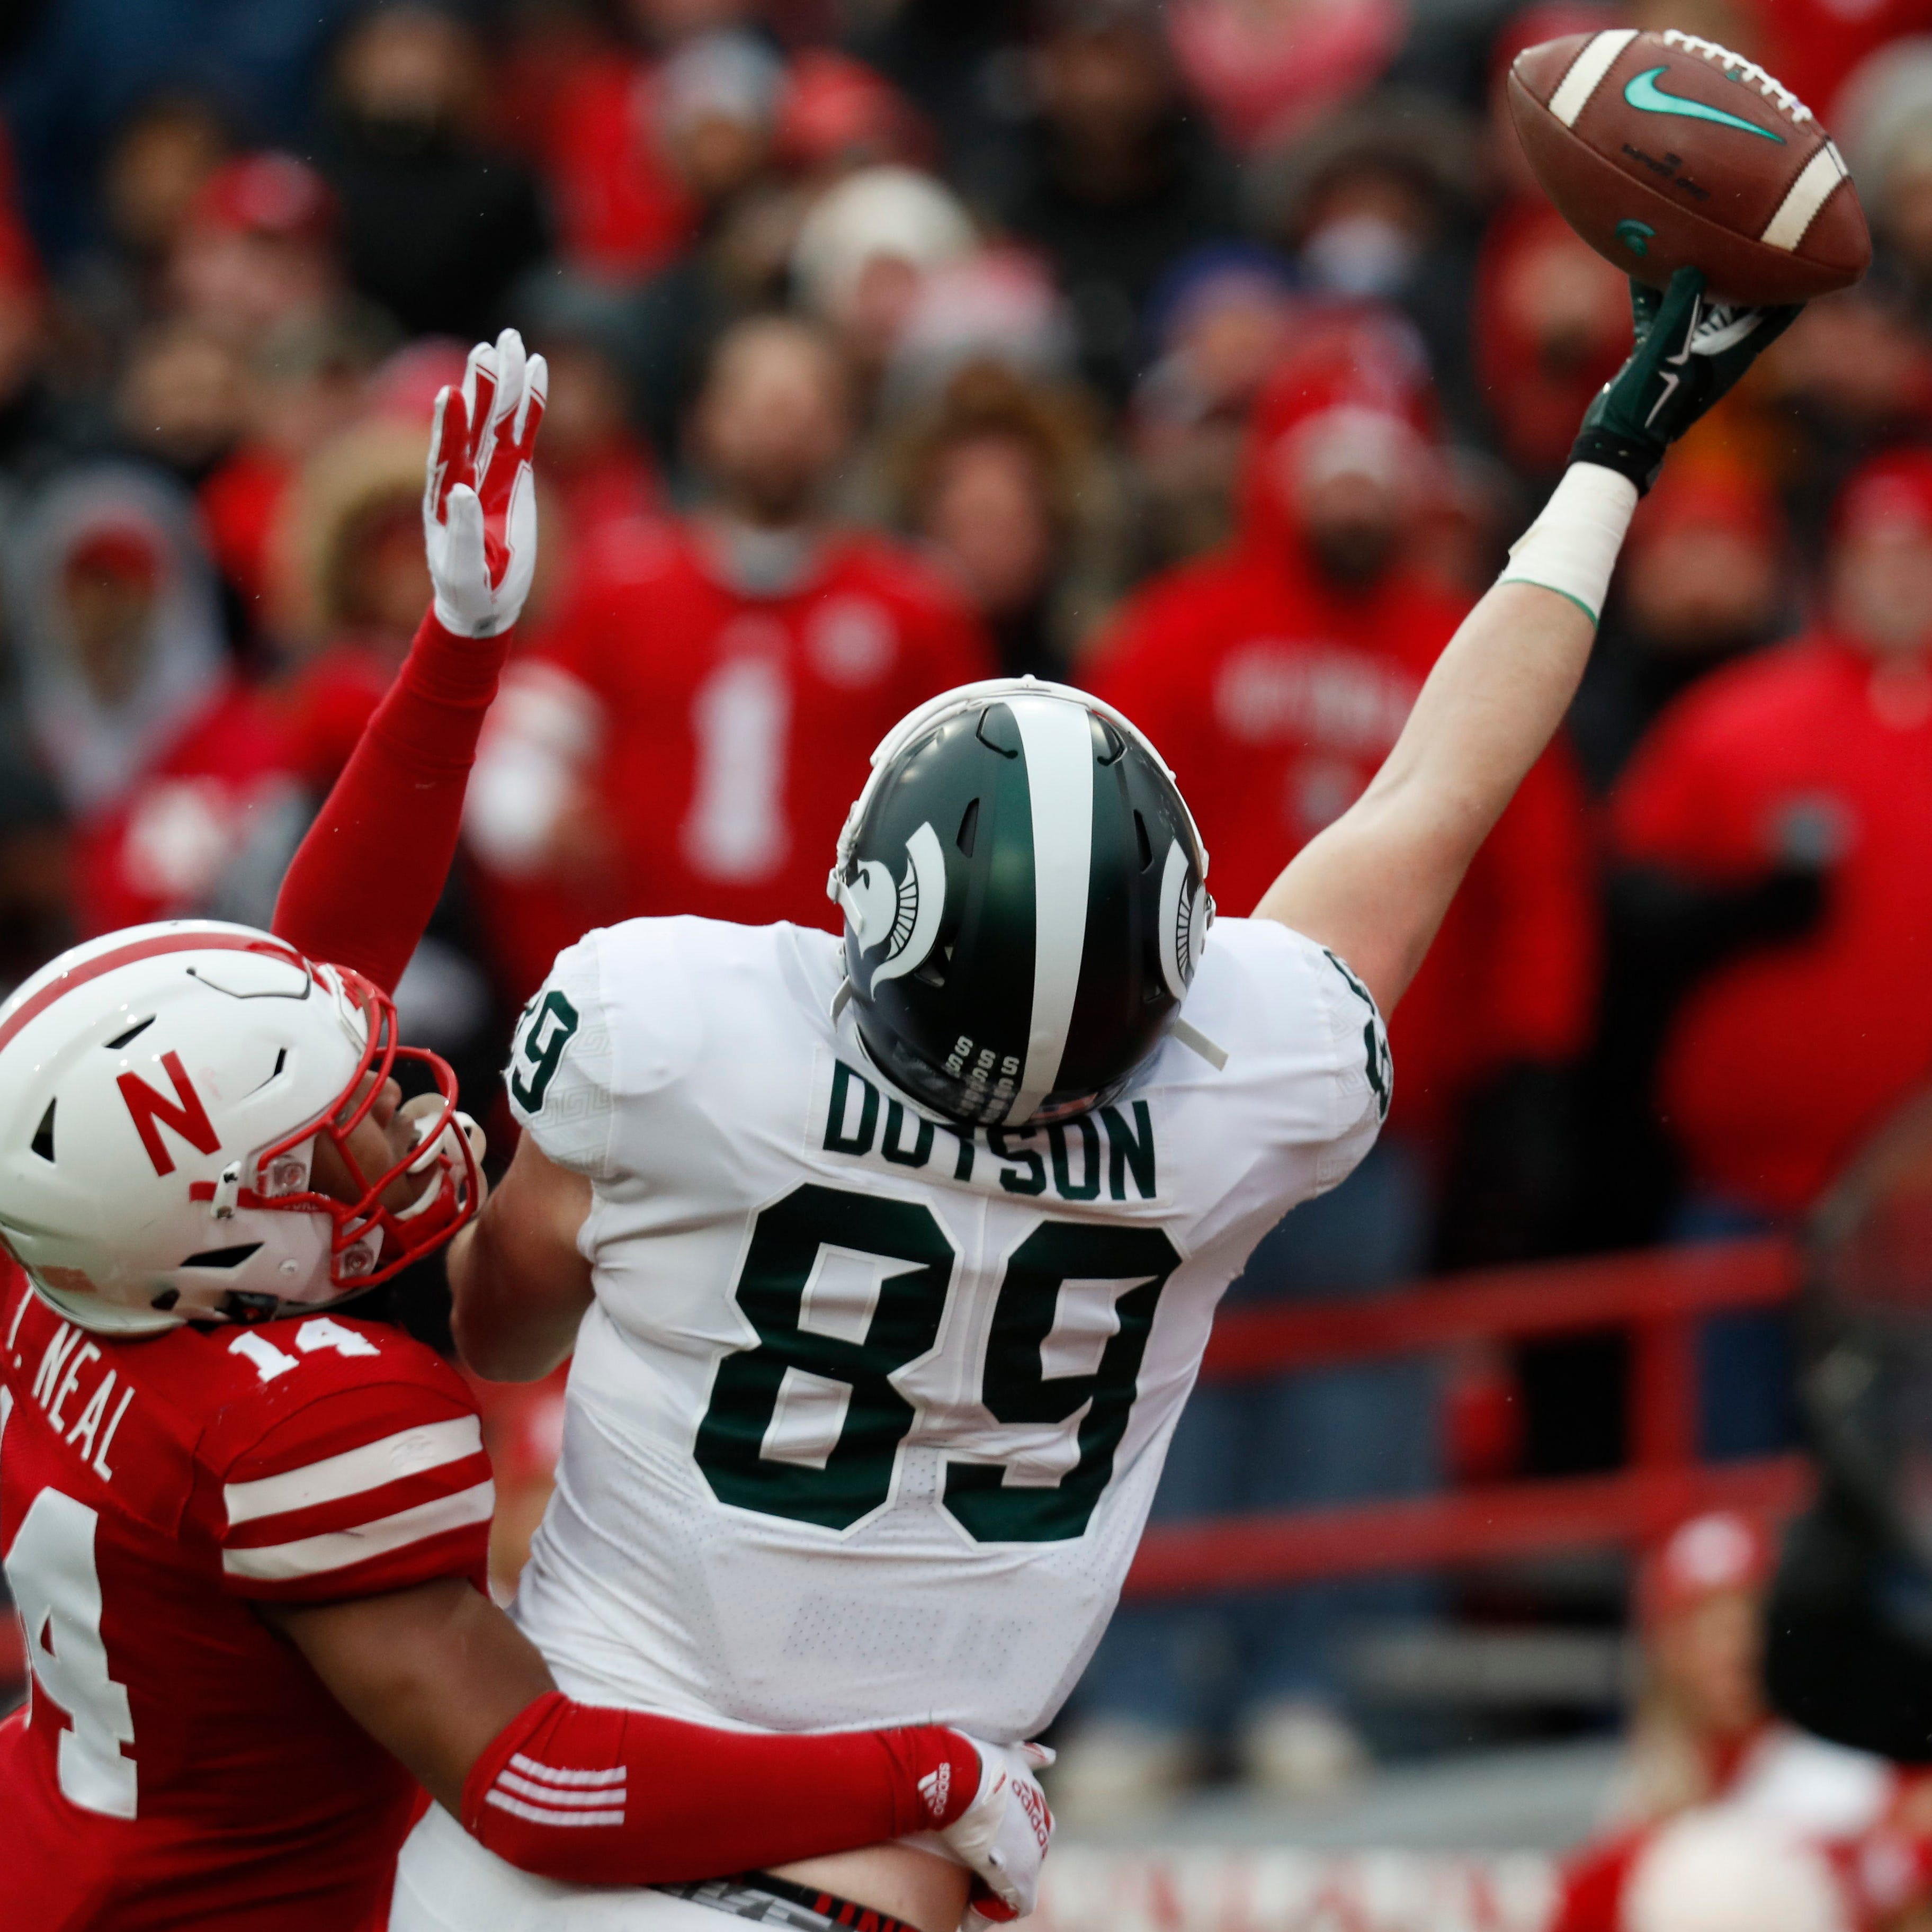 Couch: 3 quick takes on Michigan State's 9-6 loss at Nebraska